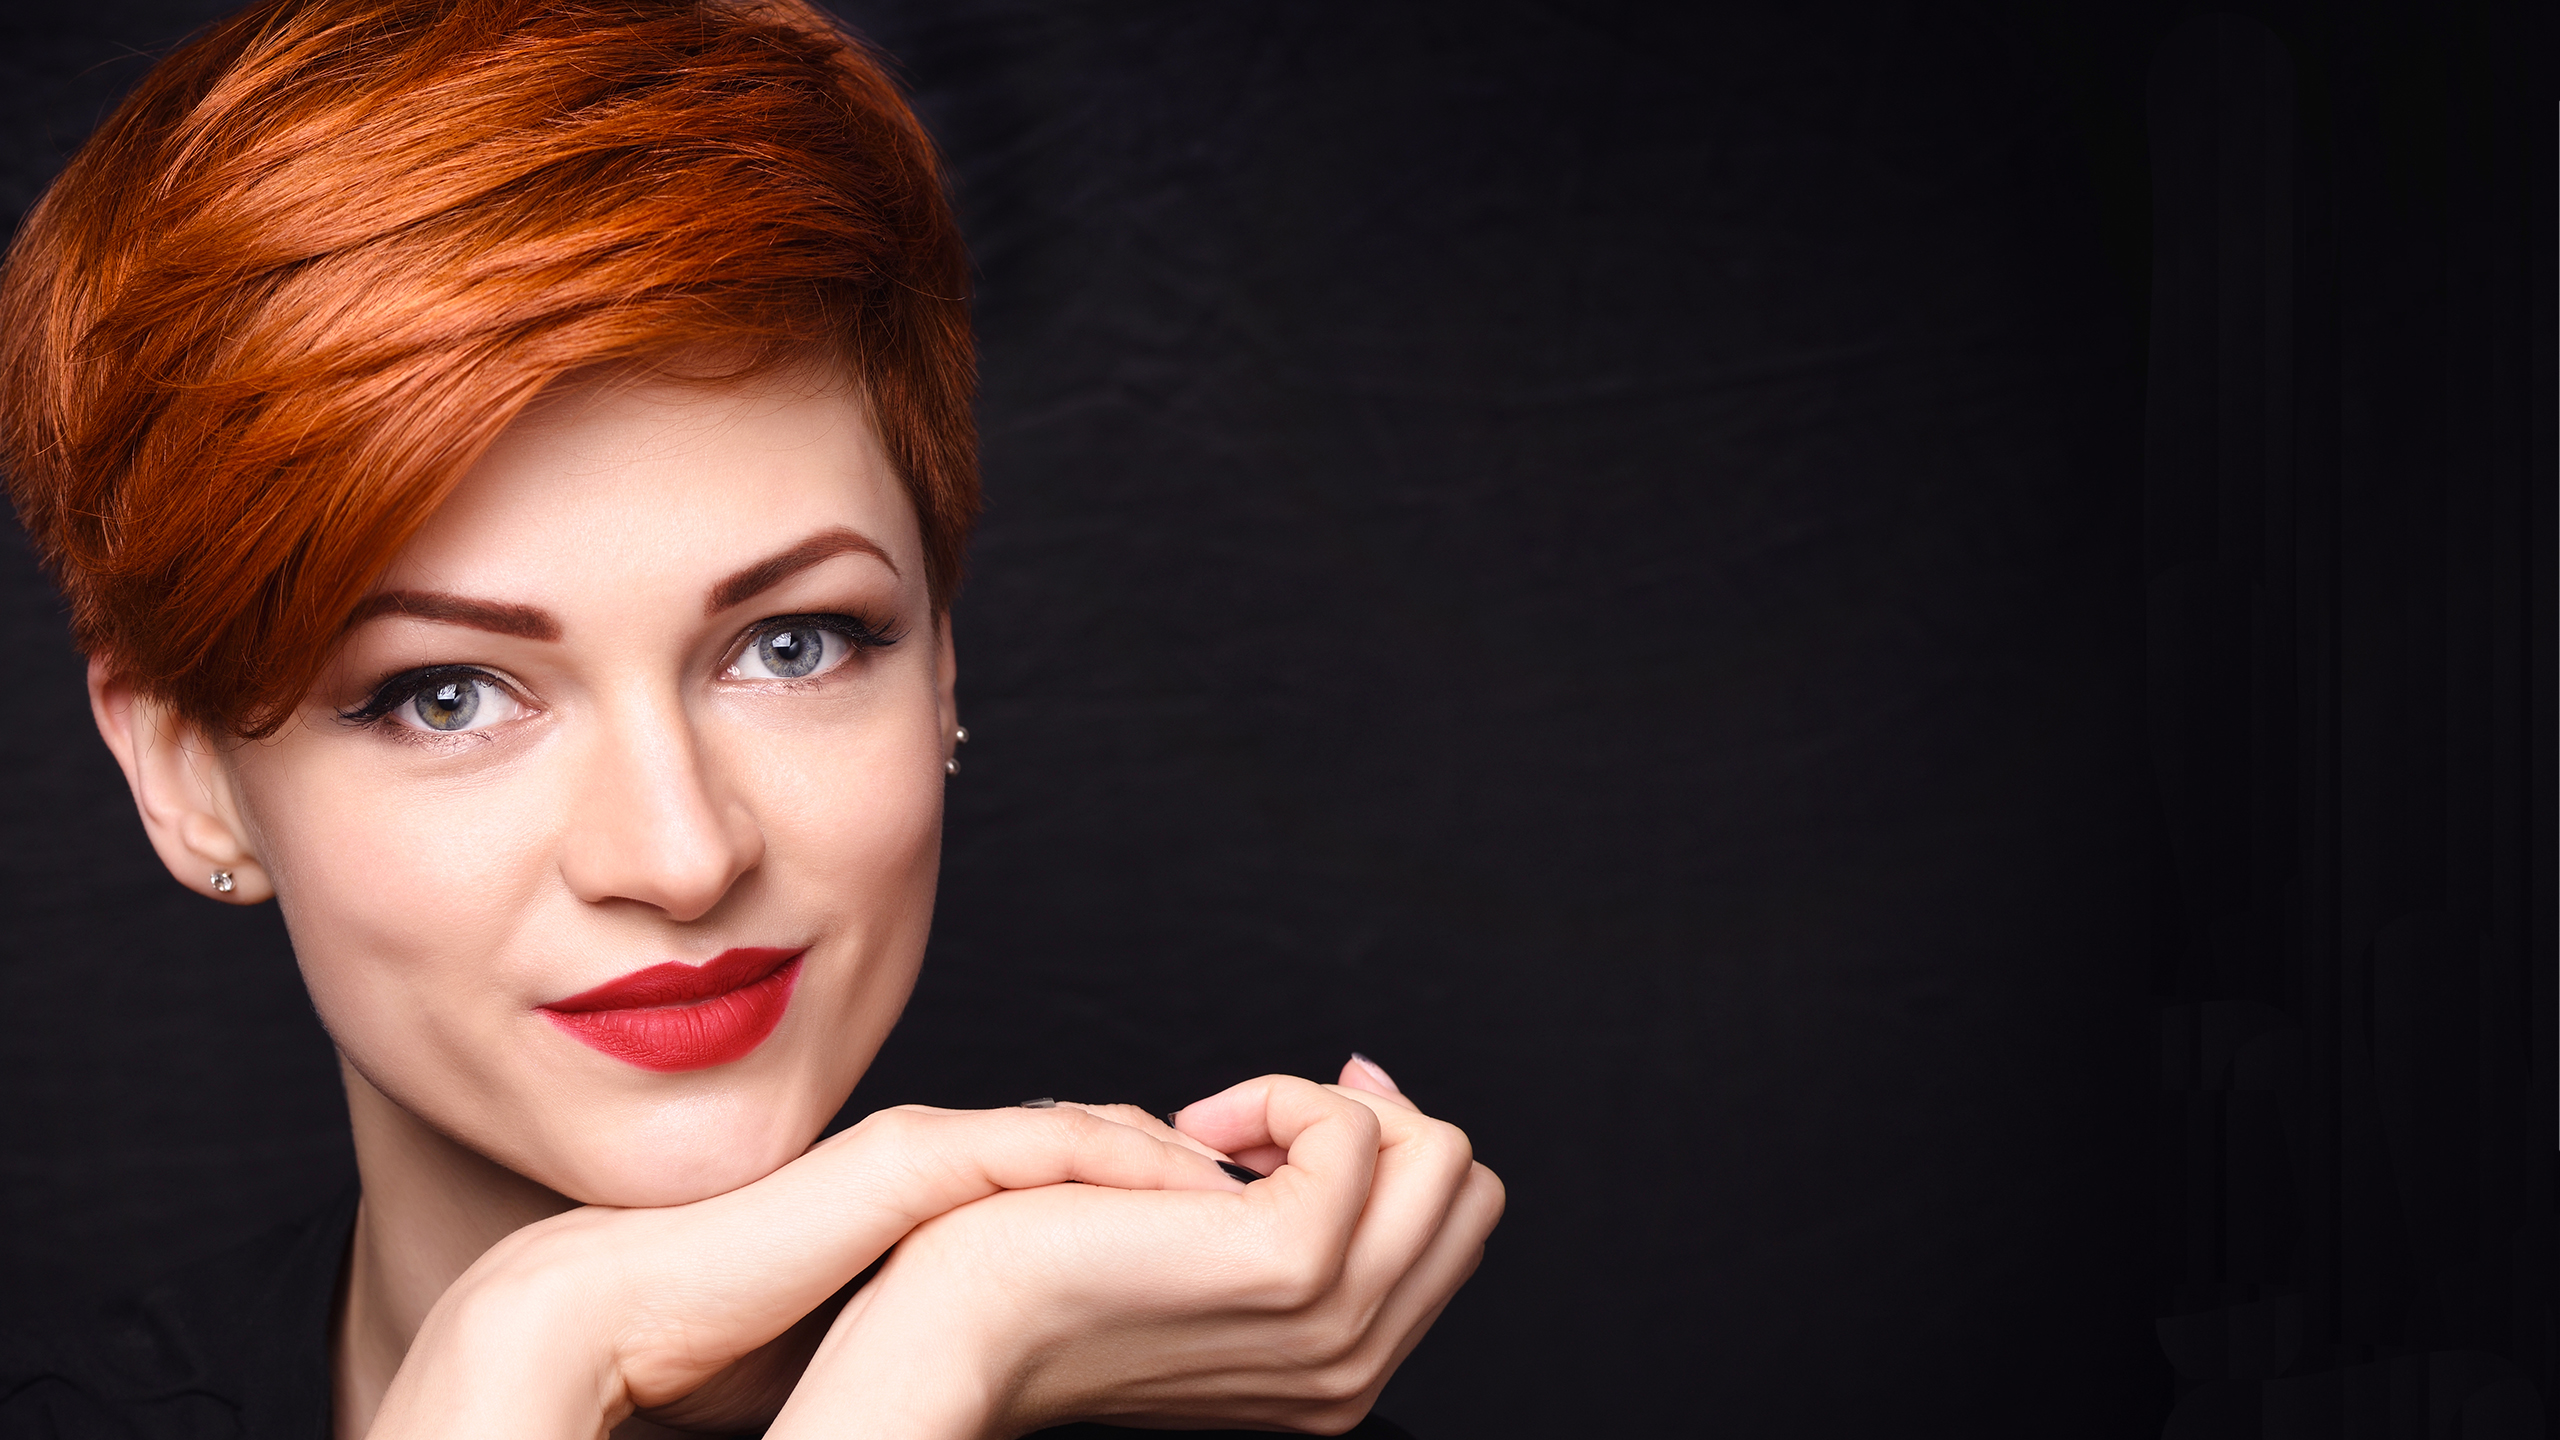 Woman with short red hair